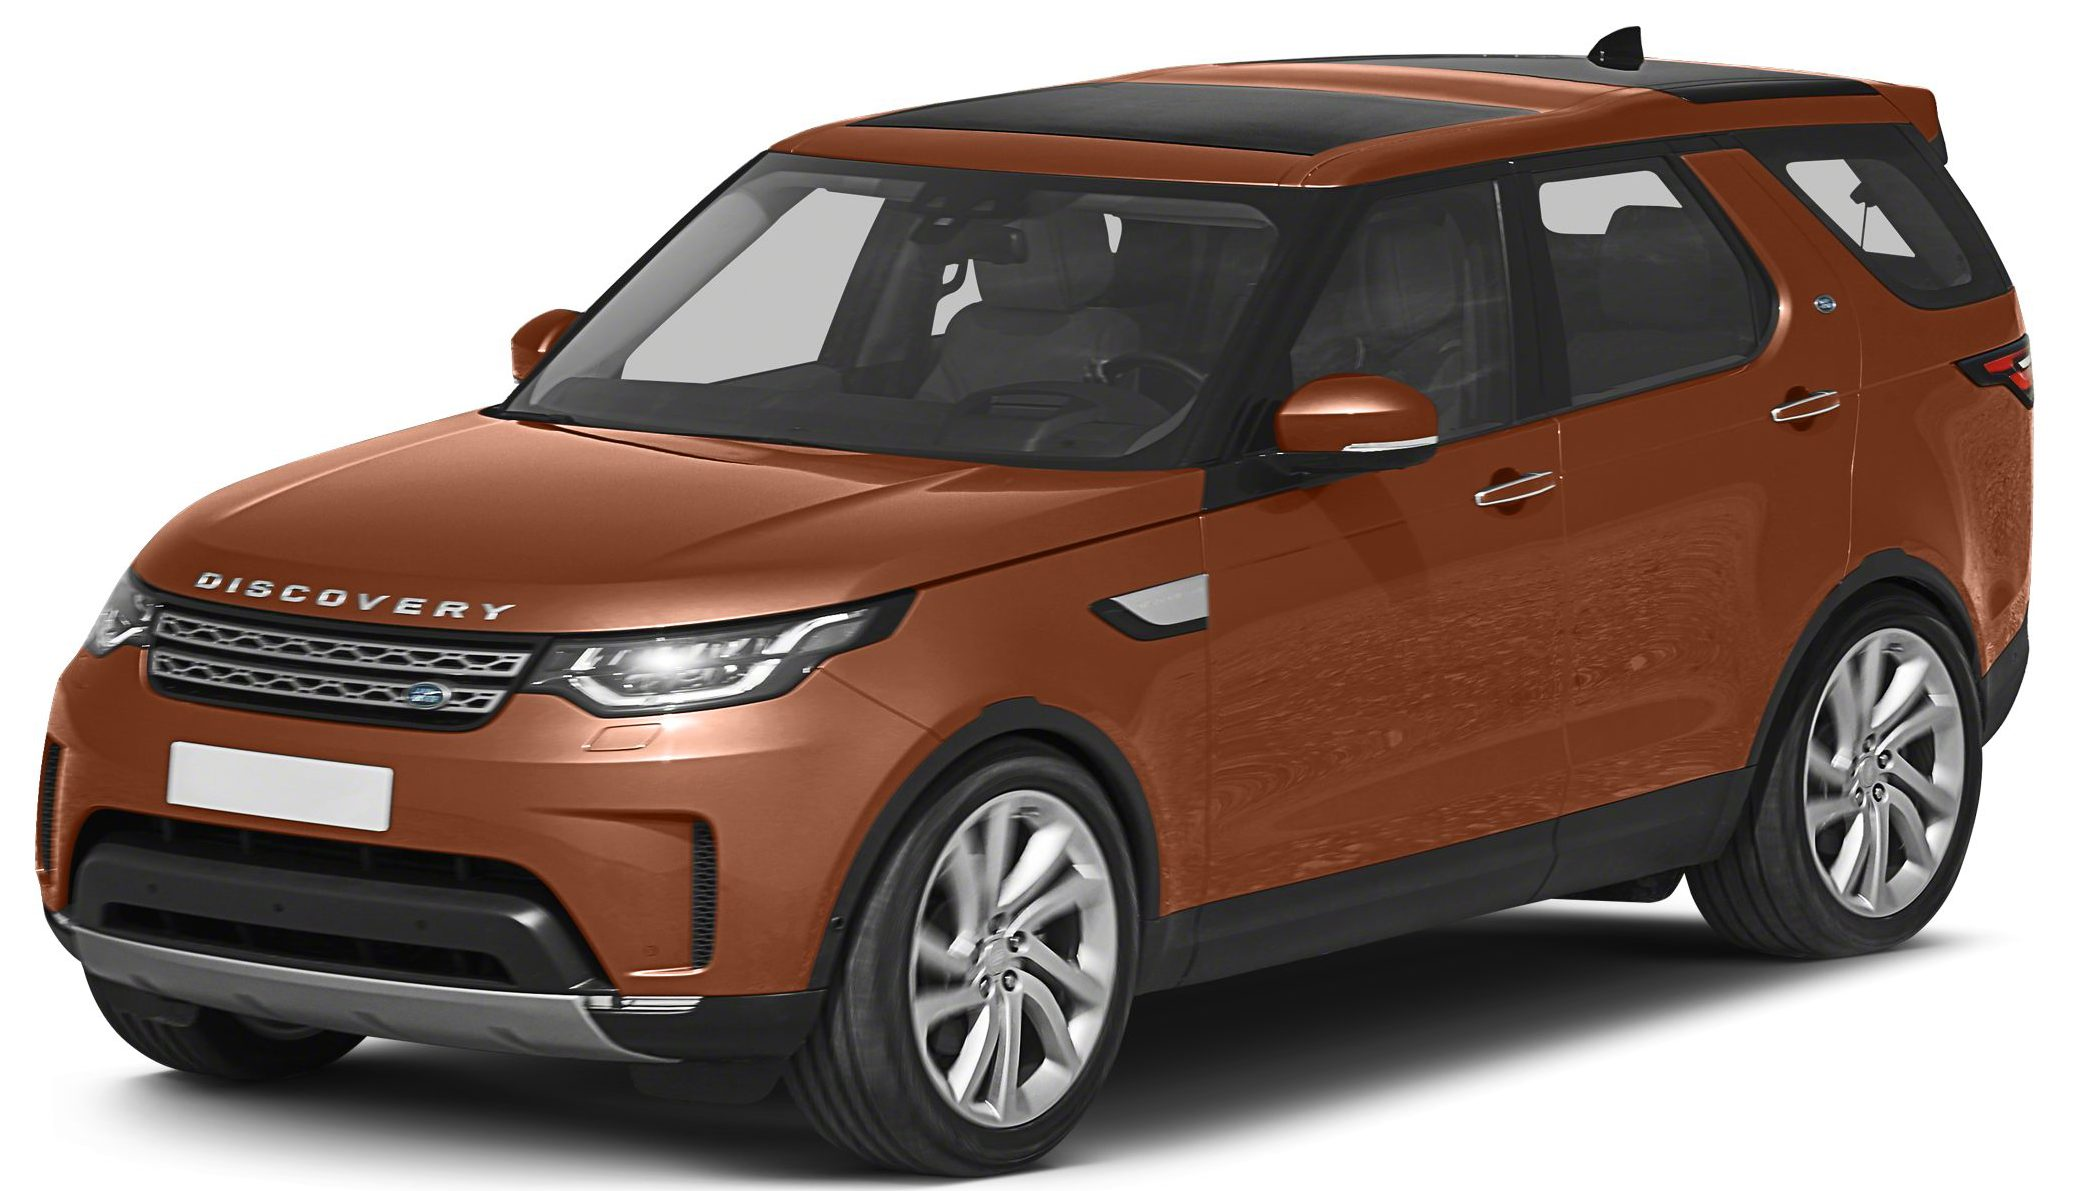 2018 land rover discovery sport hse luxury reviews 2018 land rover discovery sport car ratings. Black Bedroom Furniture Sets. Home Design Ideas